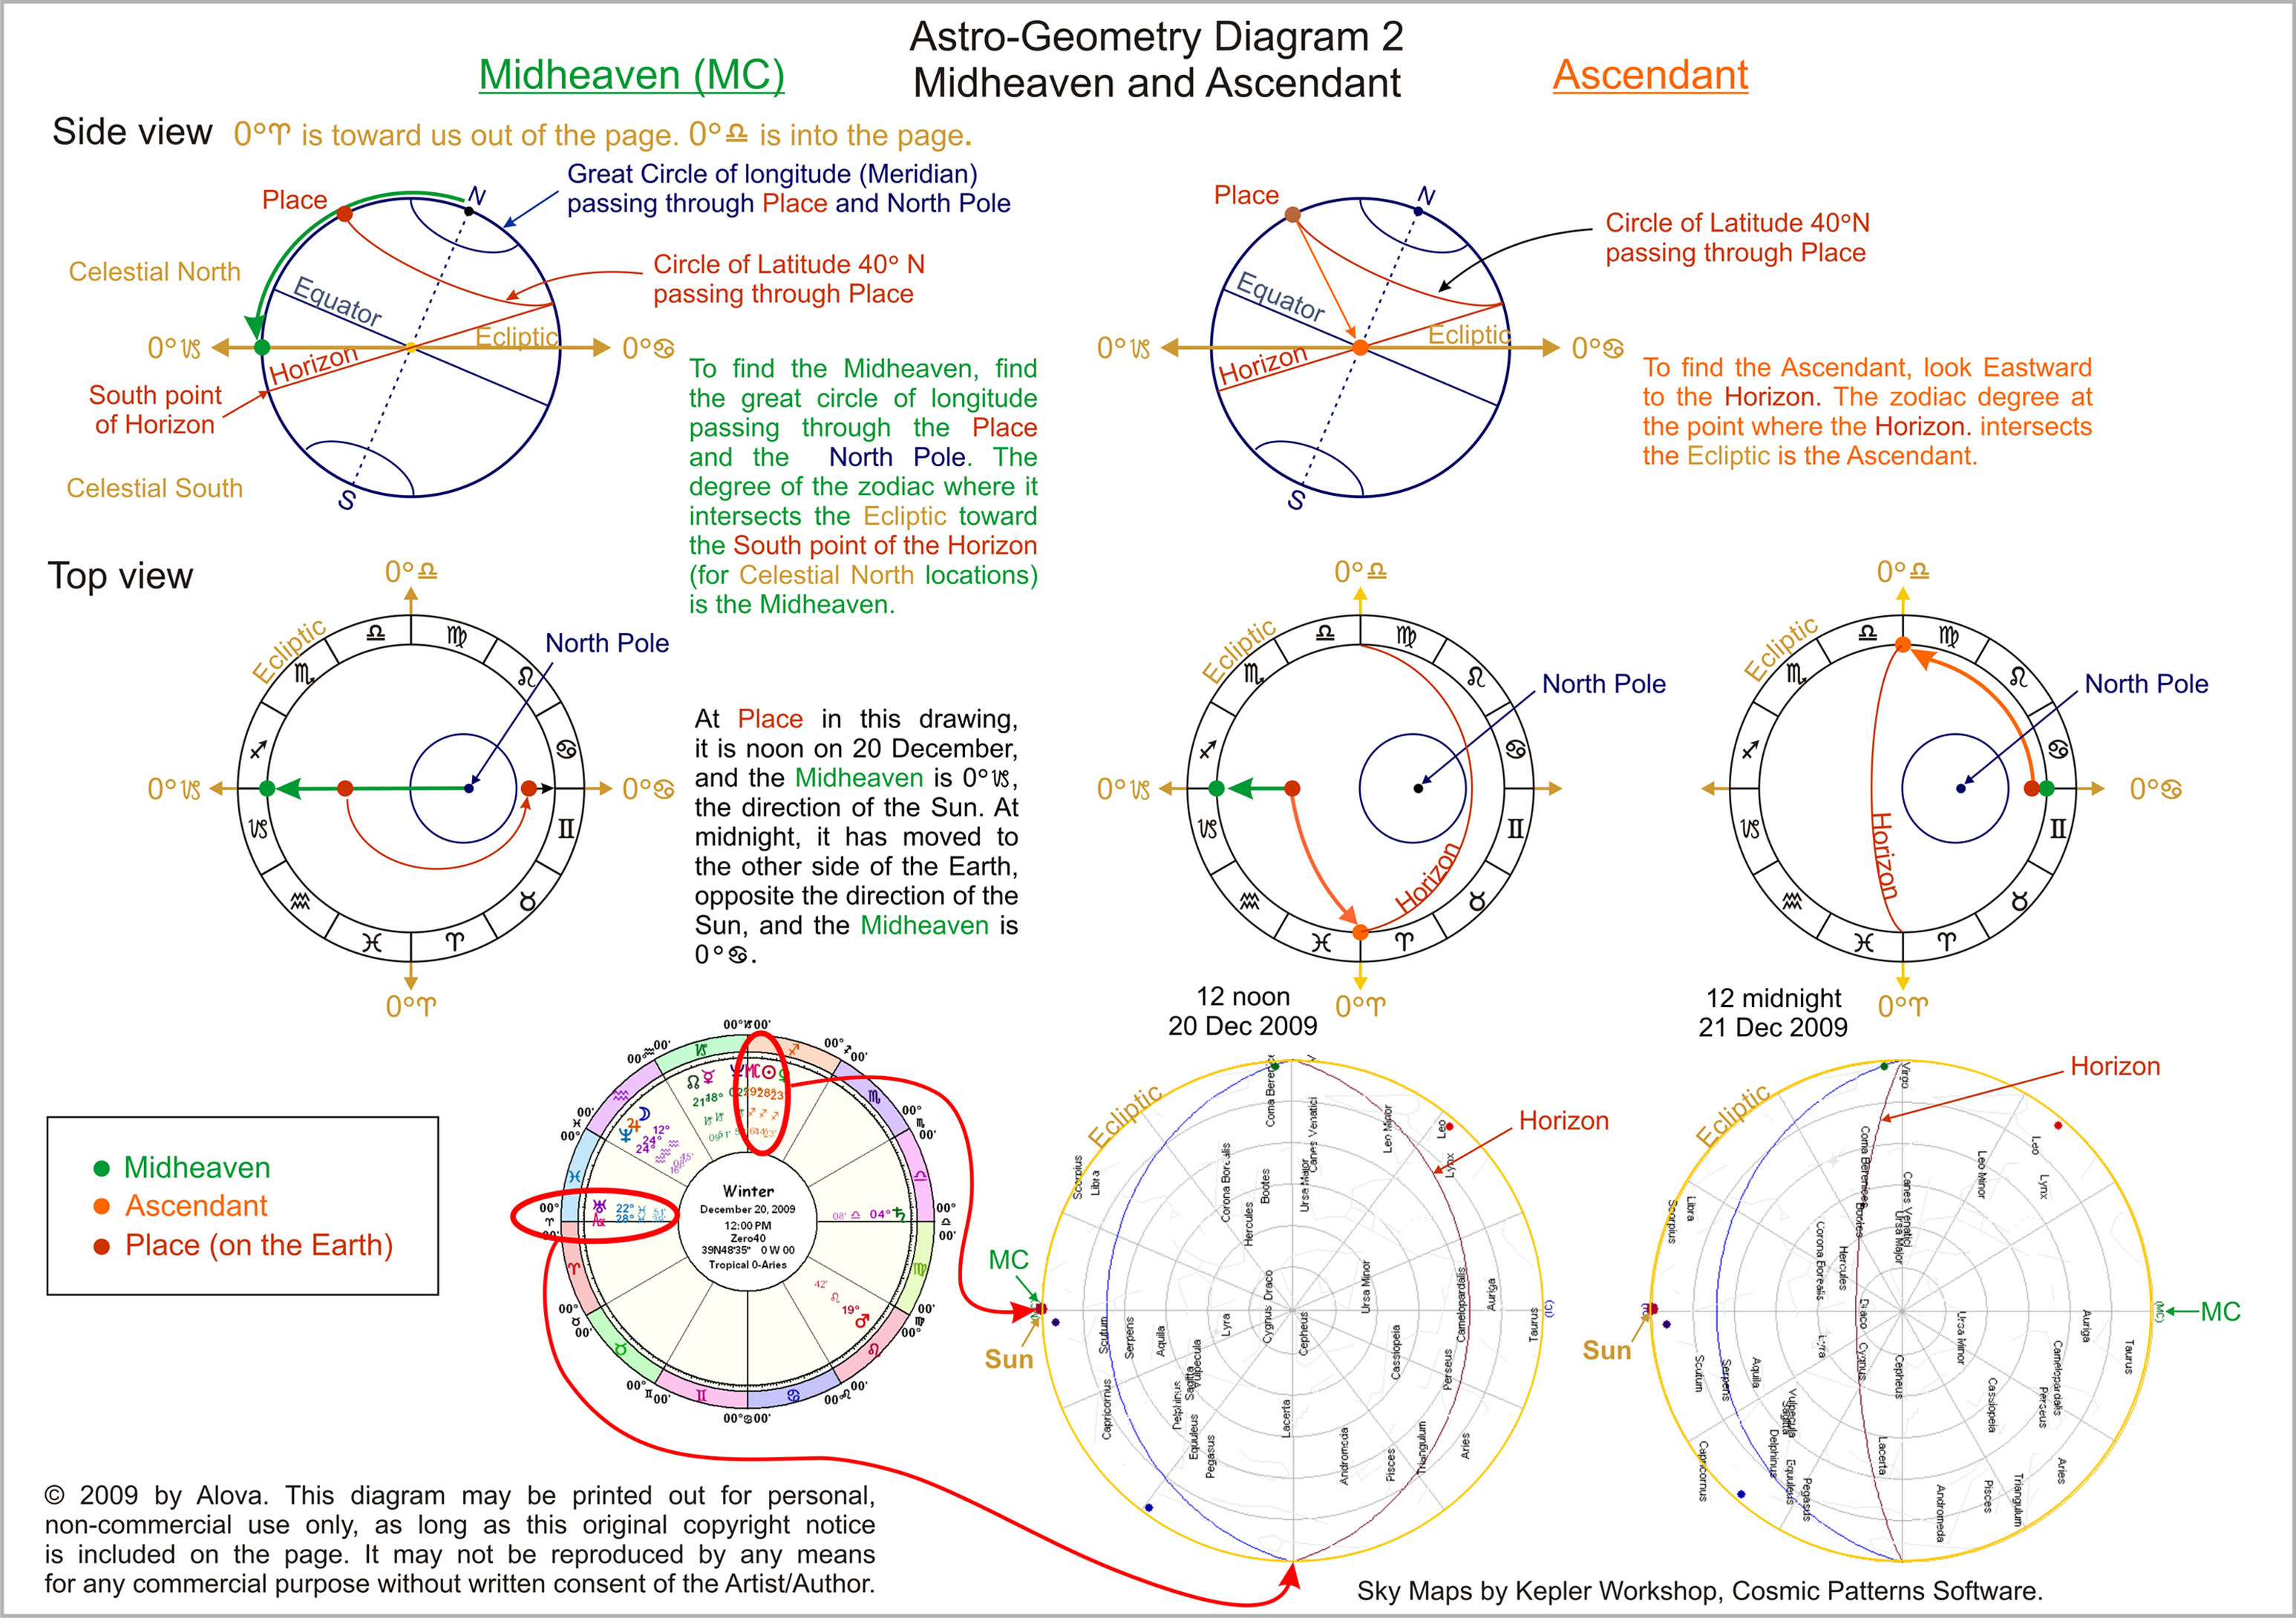 Astro geometry astrology article by alova a solstice is a convenient time to visualize astrological points at the december solstice the sun is in the direction of 0 capricorn in the tropical nvjuhfo Image collections